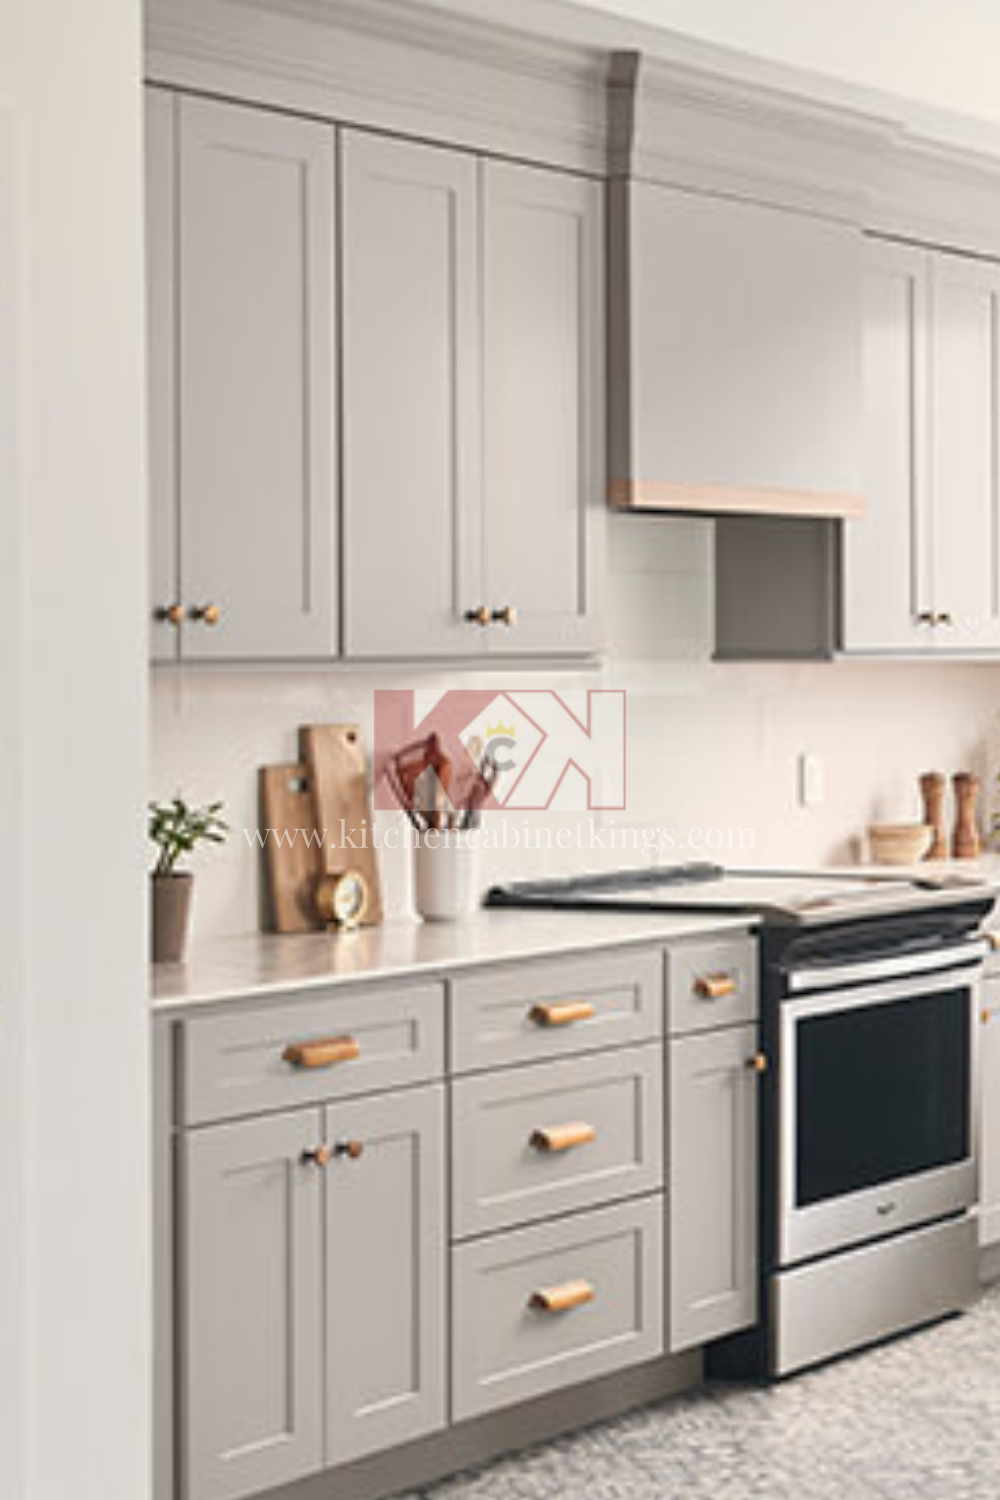 American Made Bowery Pewter Kitchen Cabinets In 2020 Assembled Kitchen Cabinets Kitchen Cabinets Kitchen Remodel